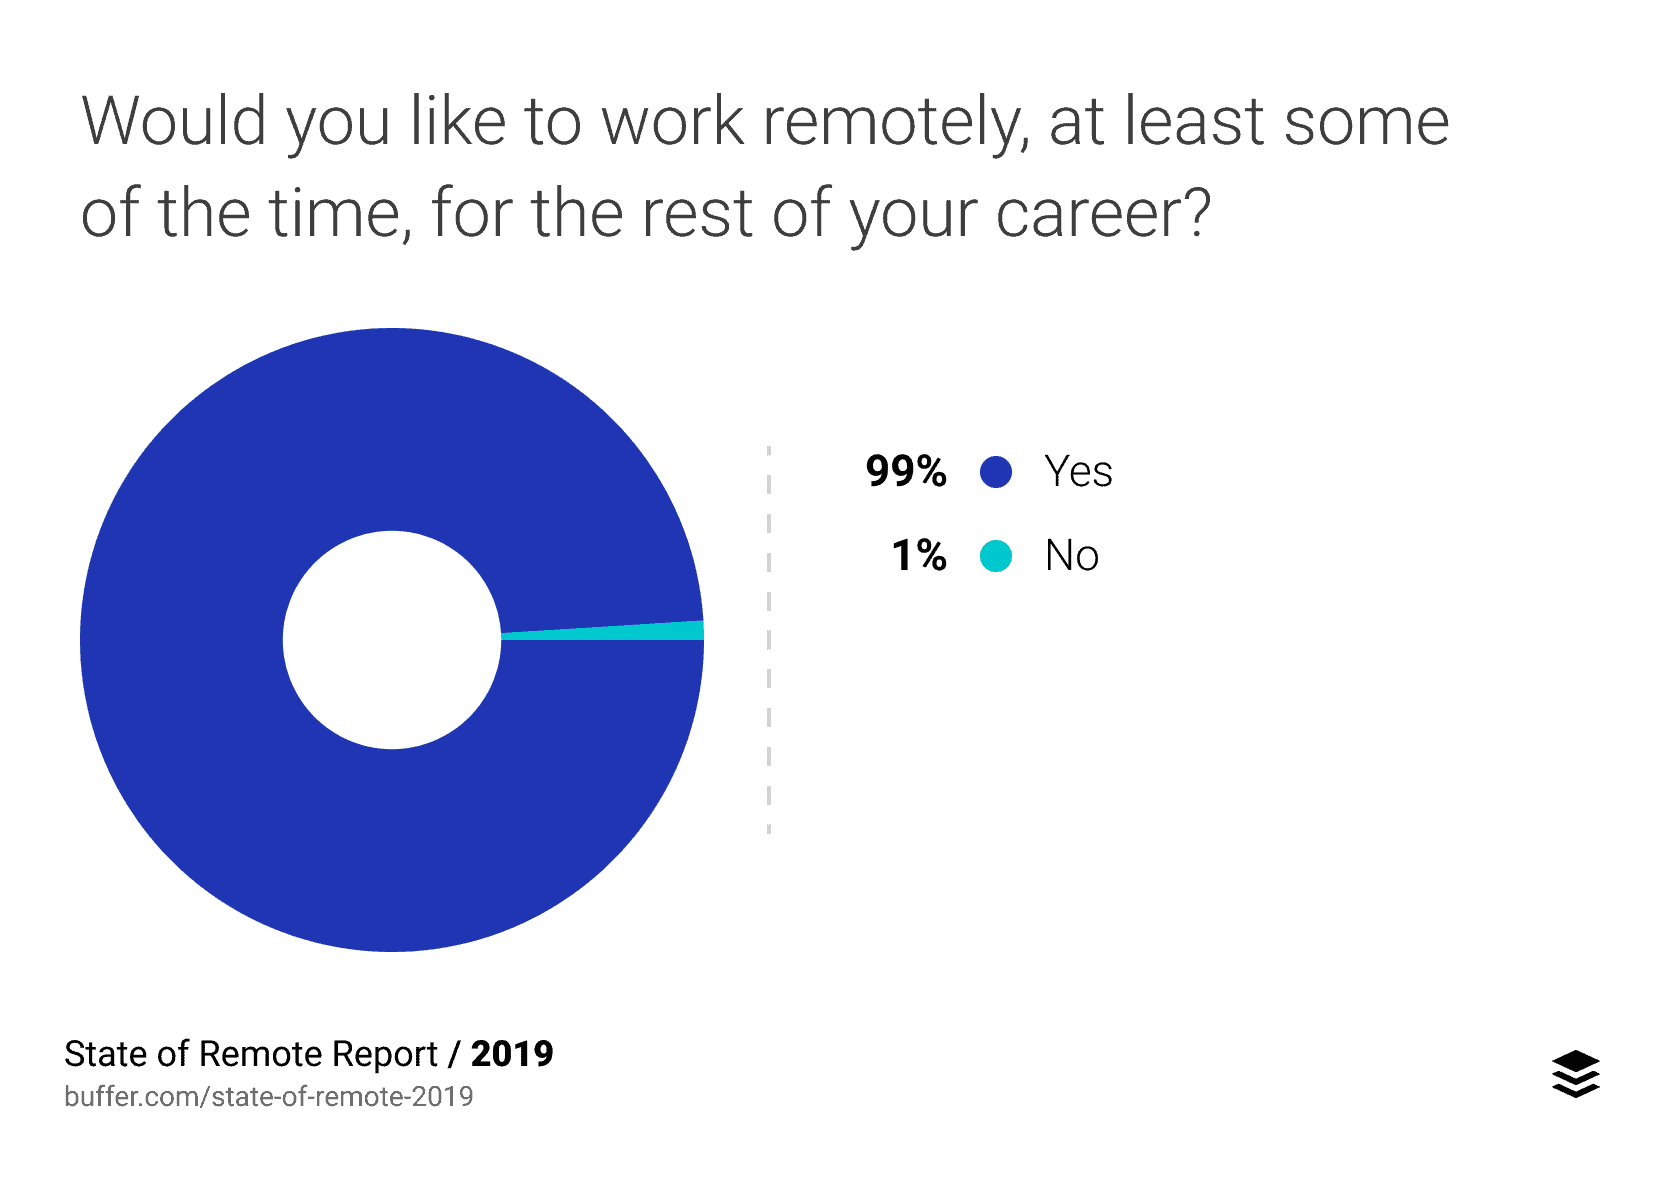 Number of people who would like to work remotely